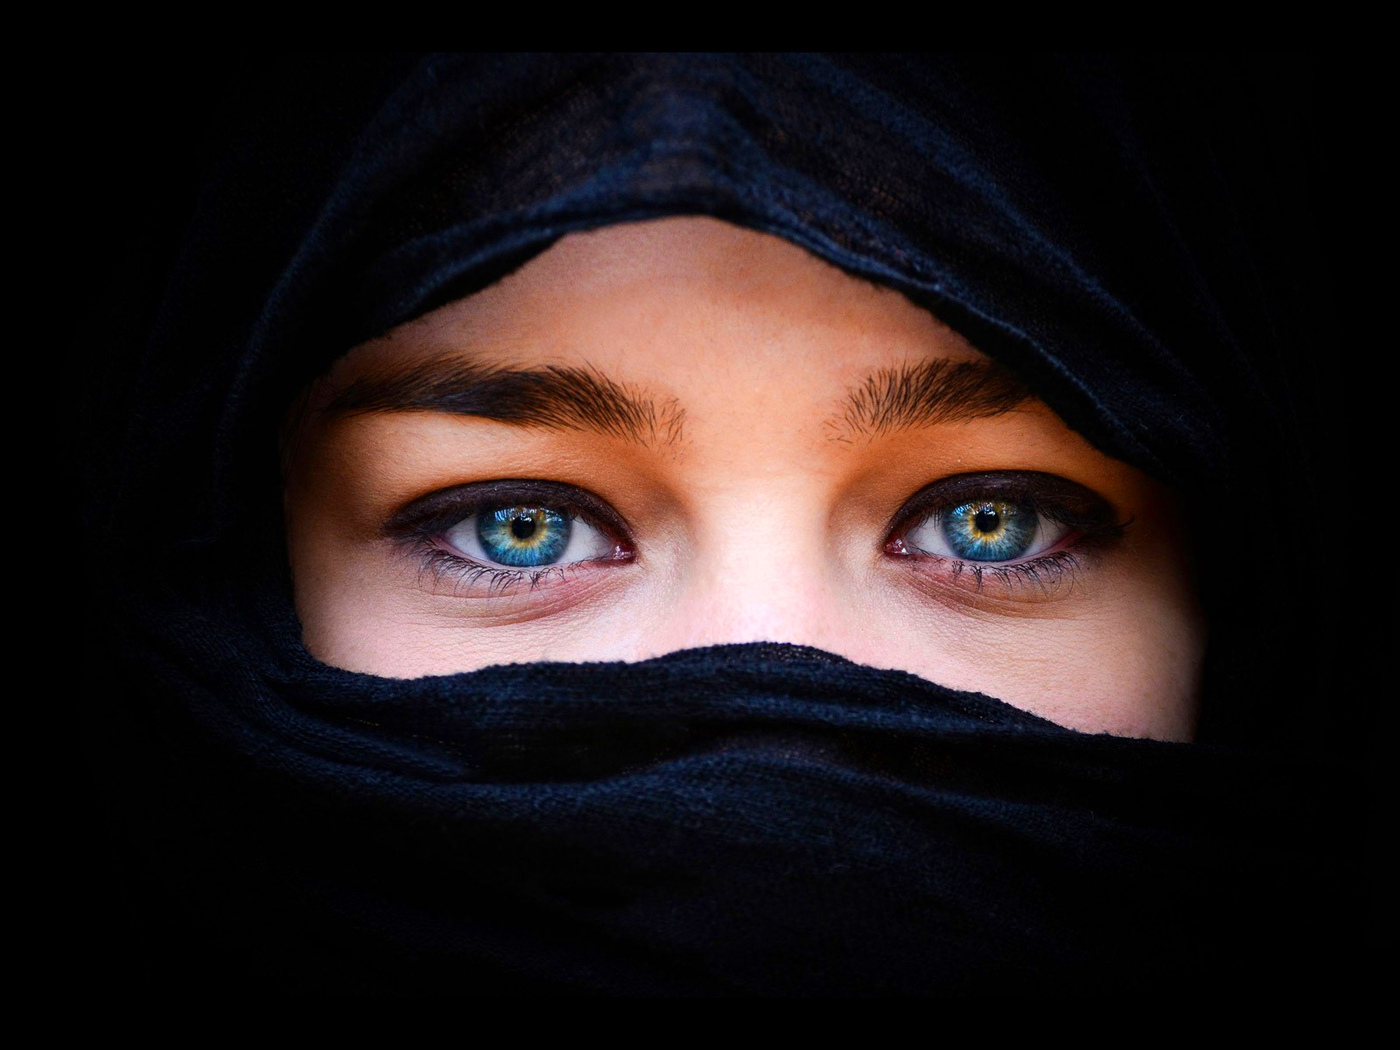 aroda muslim girl personals Meet marriage-minded singles here muslim singles know well how hard it can be to find a partner in the us, let alone one you wish to marry and settle down with it's an issue faced by many americans – and it only gets harder when you bring faith into the equation.